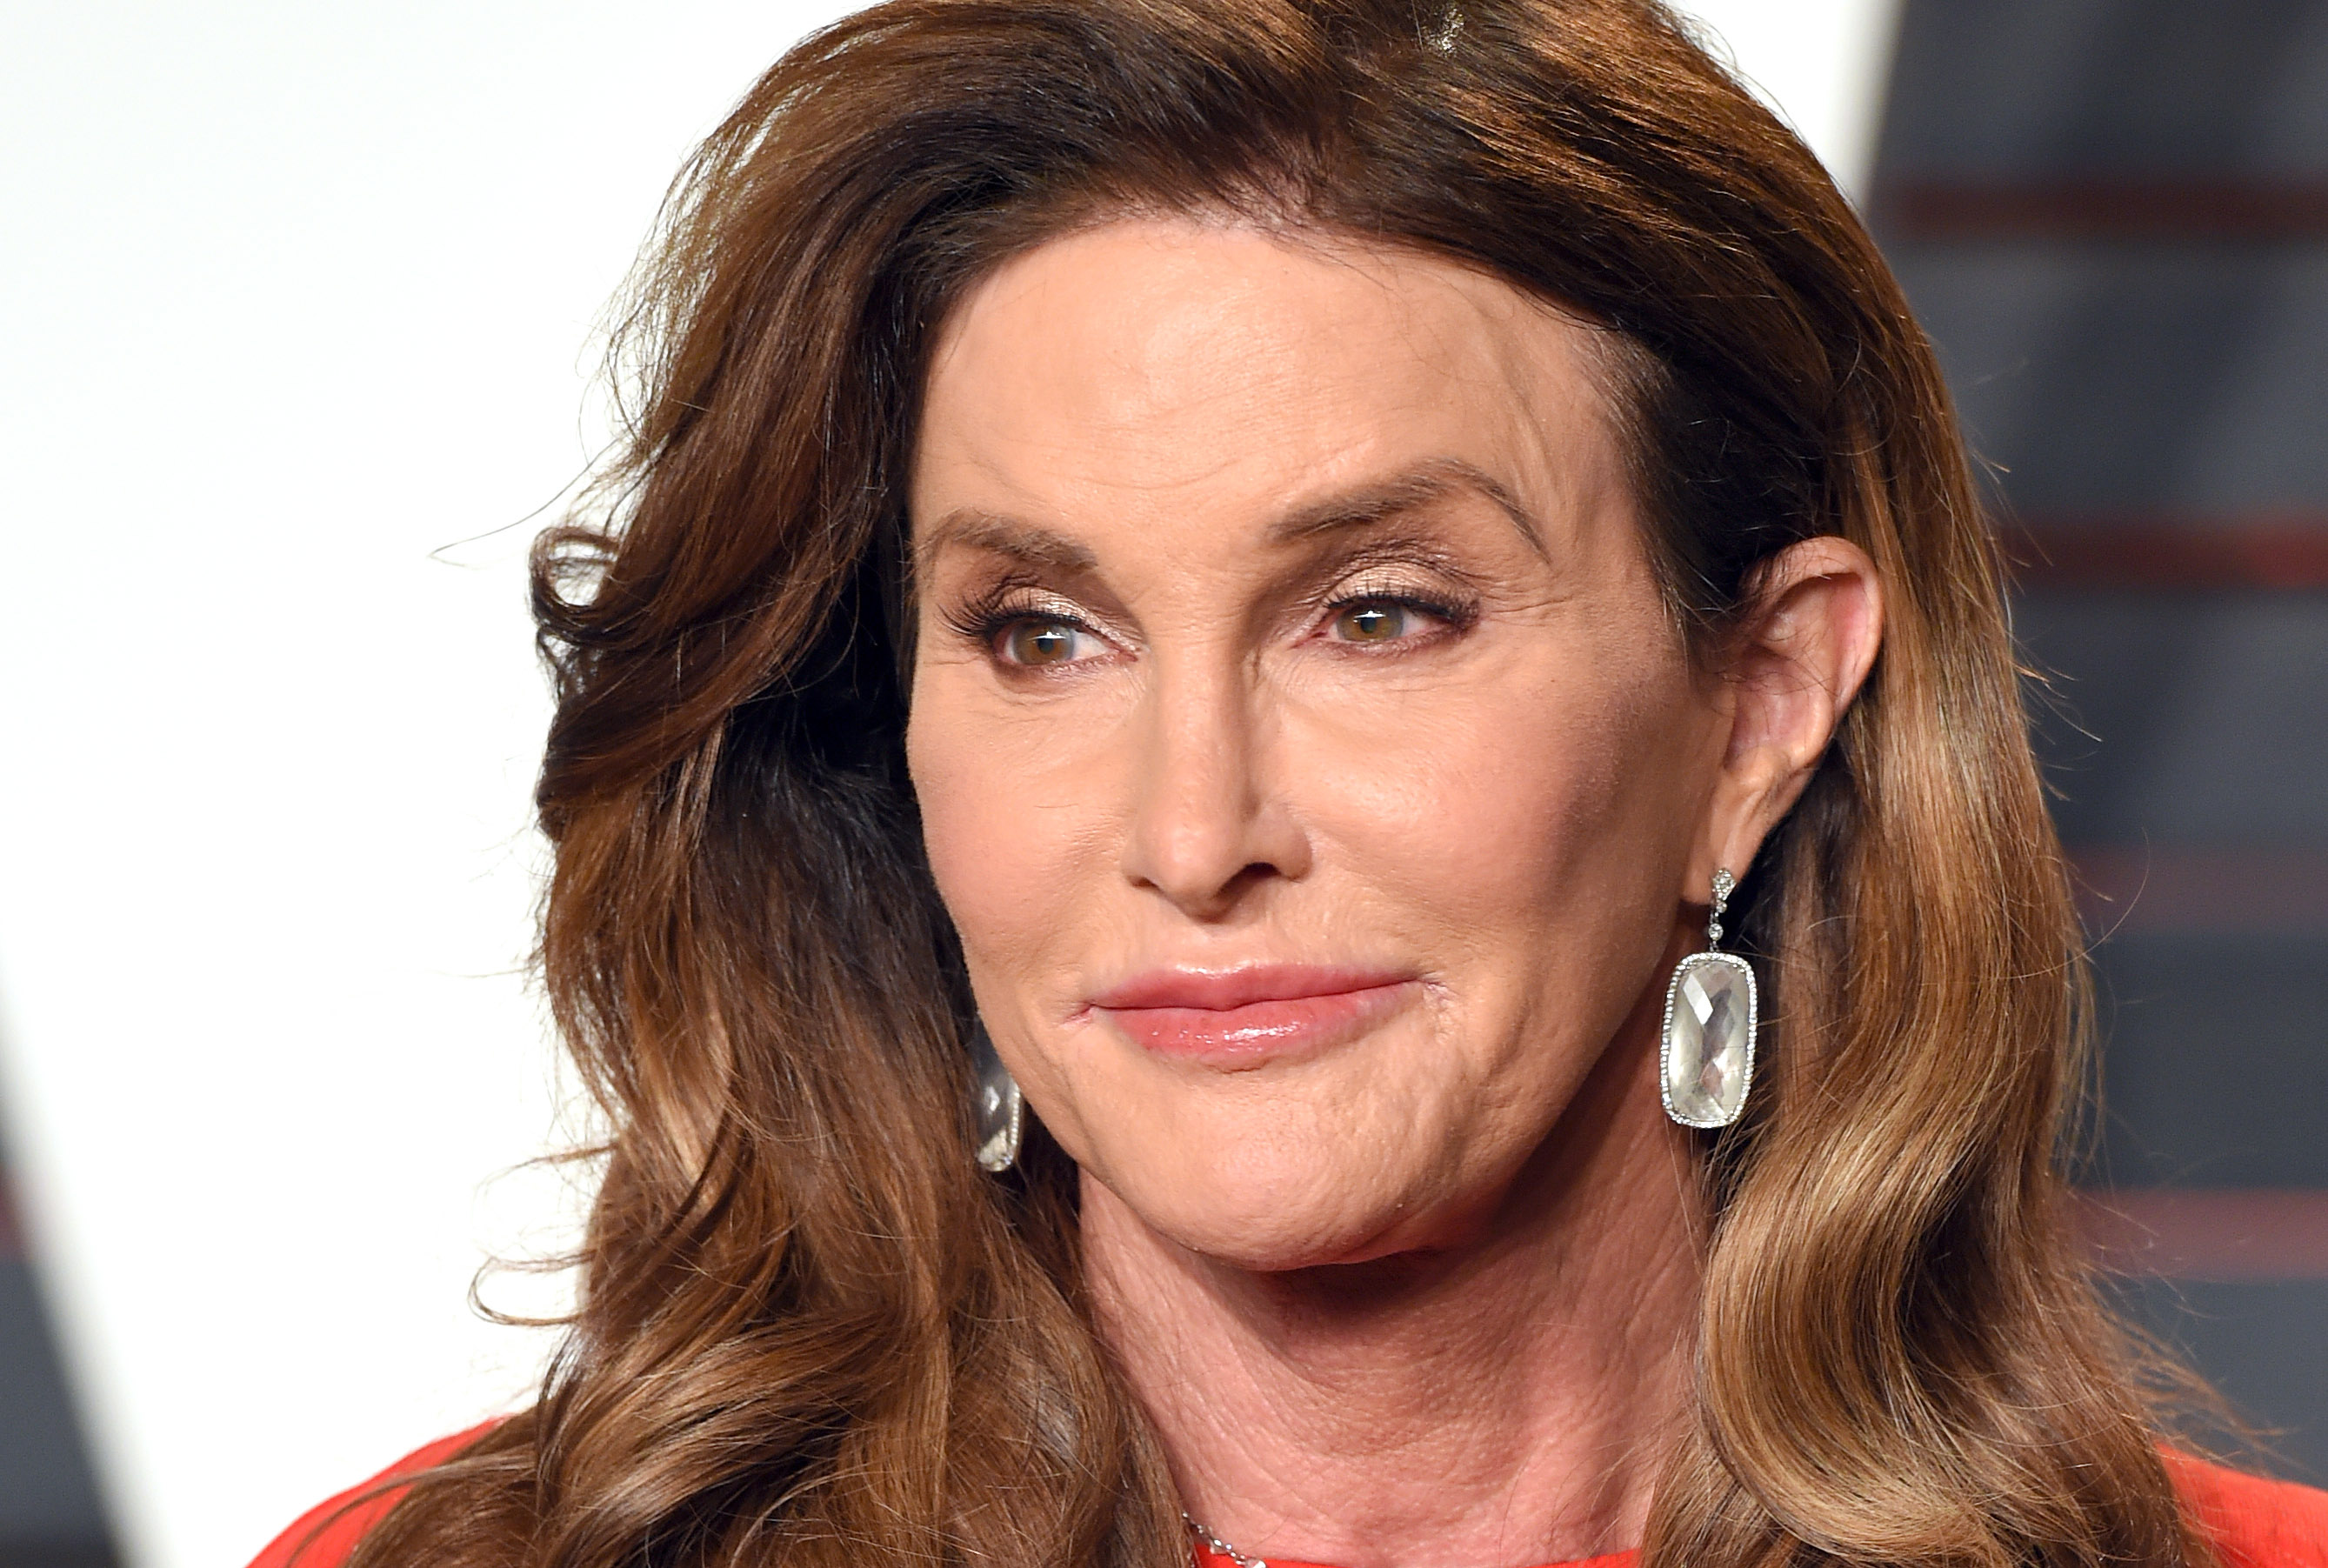 Caitlyn Jenner attends the 2016 Vanity Fair Oscar Party Hosted By Graydon Carter at Wallis Annenberg Center for the Performing Arts in Beverly Hills, Calif., on February 28, 2016.